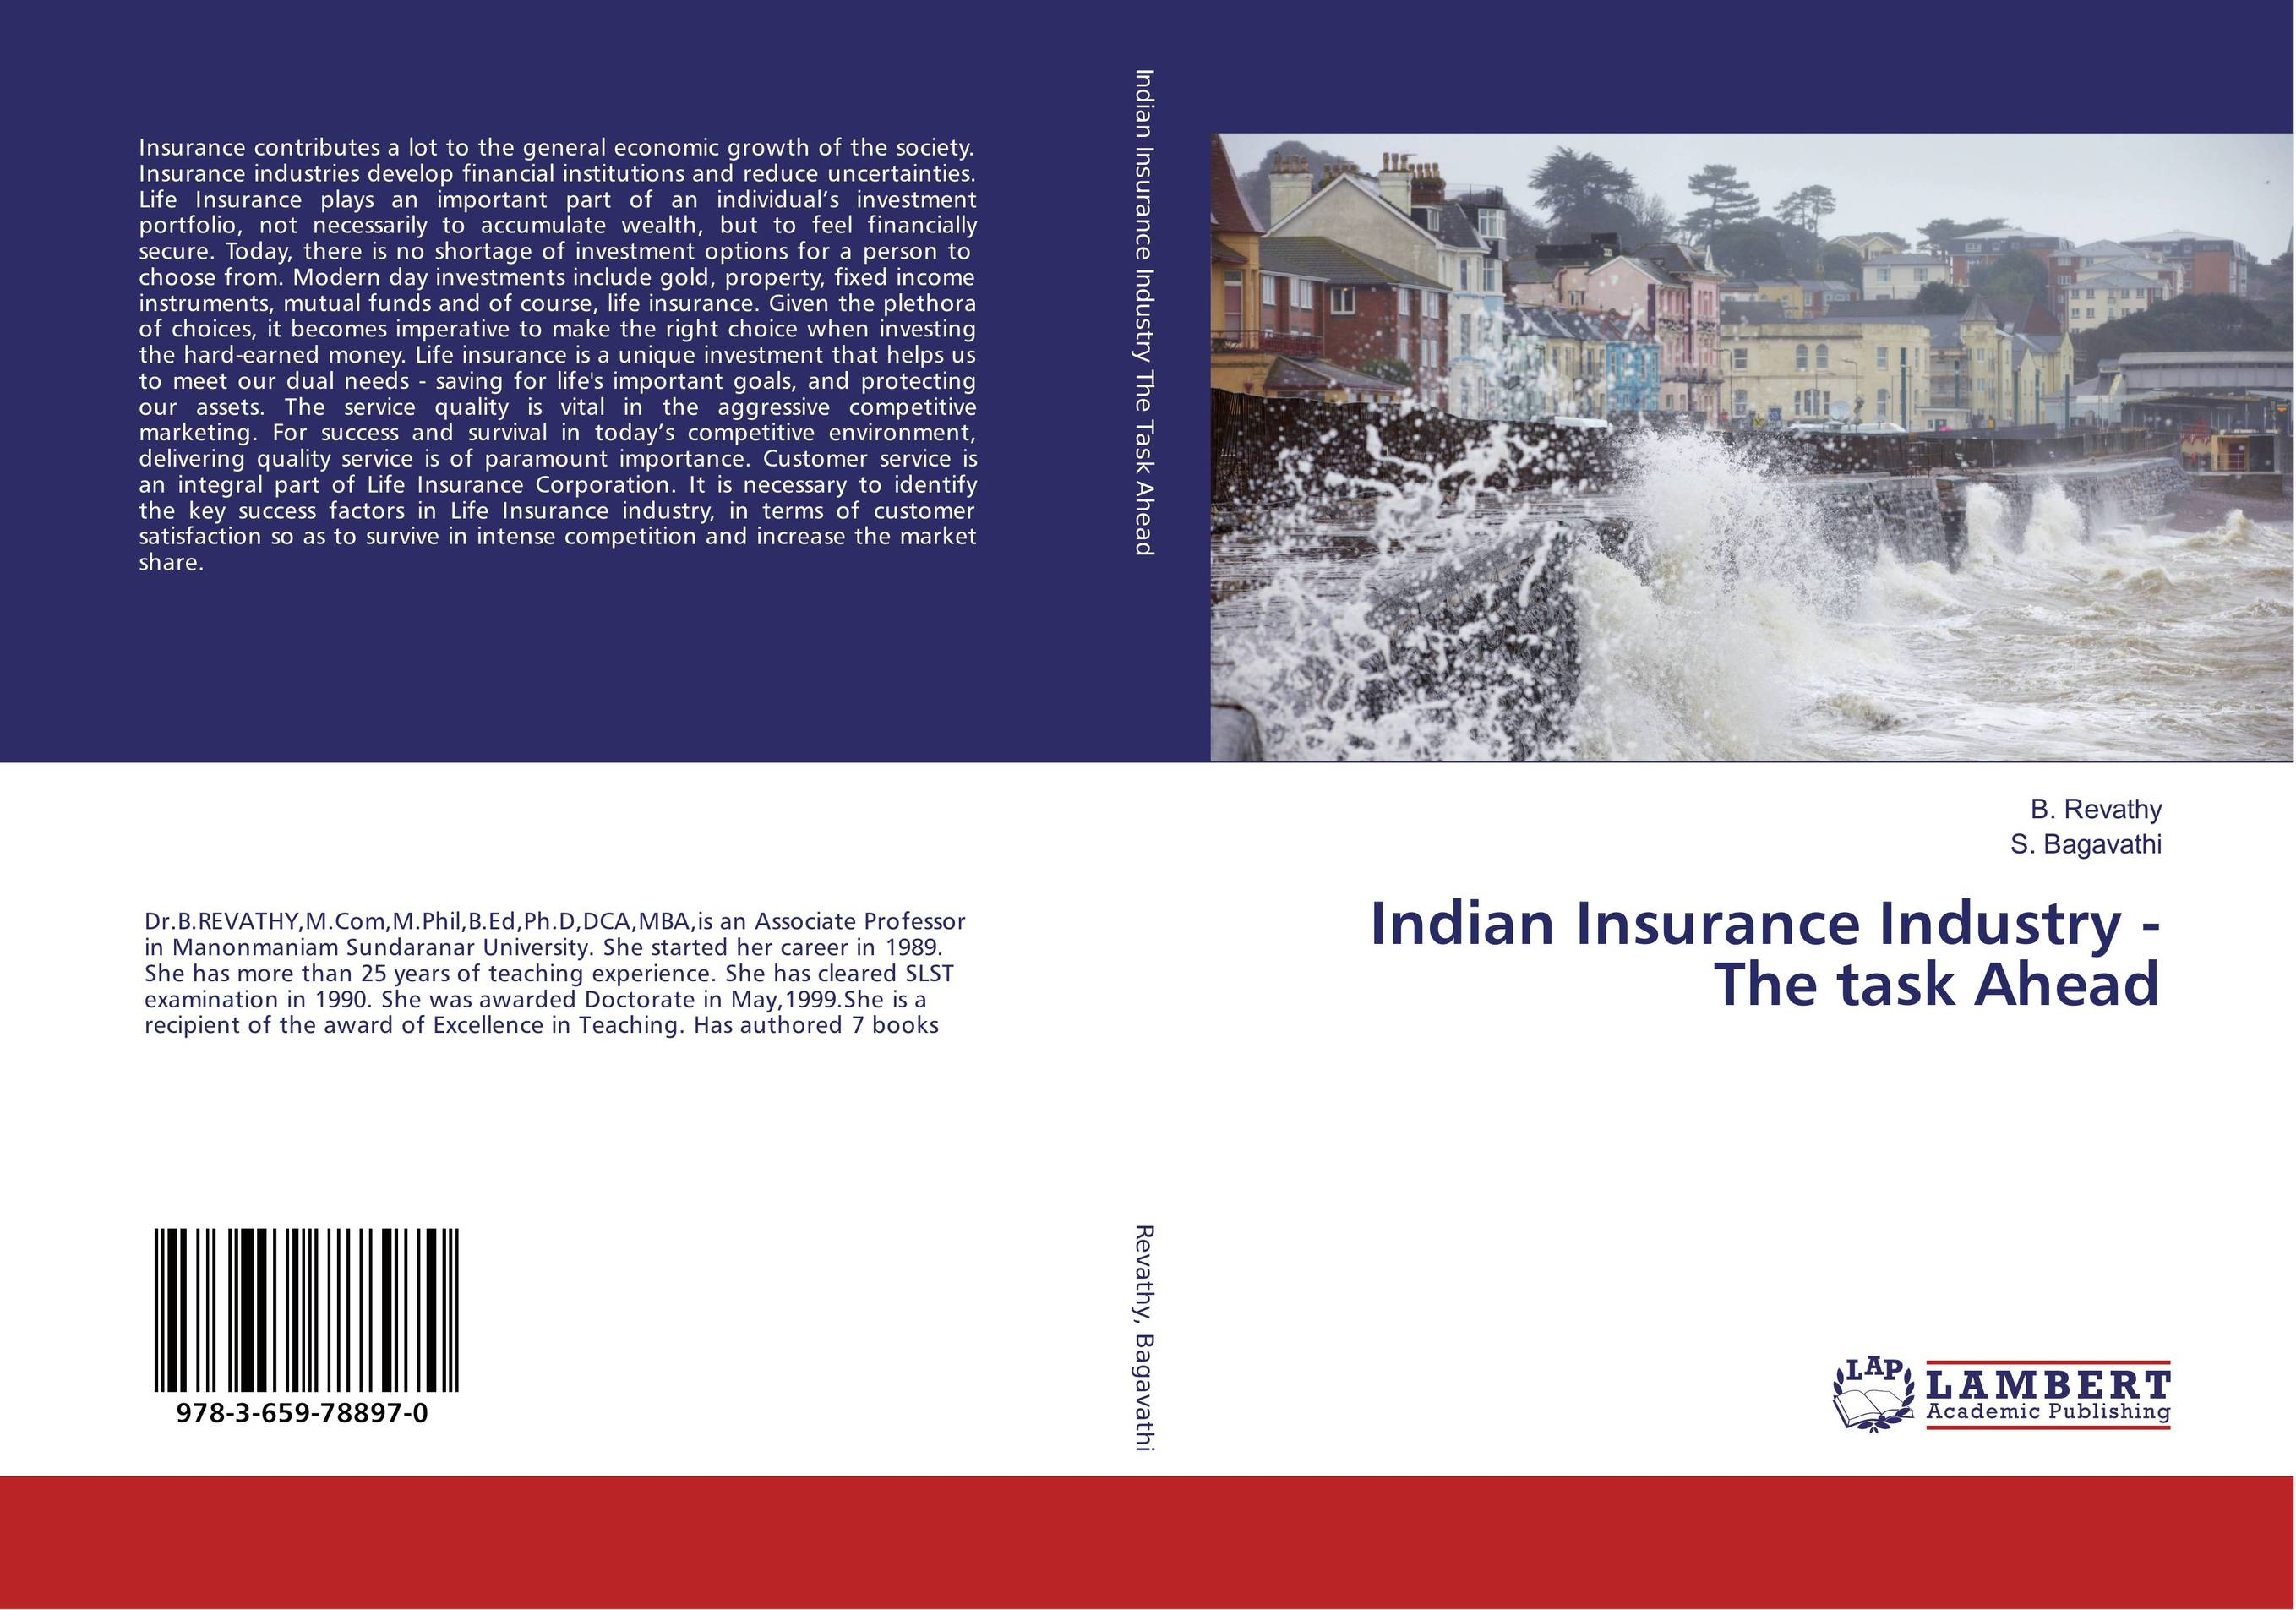 Indian Insurance Industry - The task Ahead.